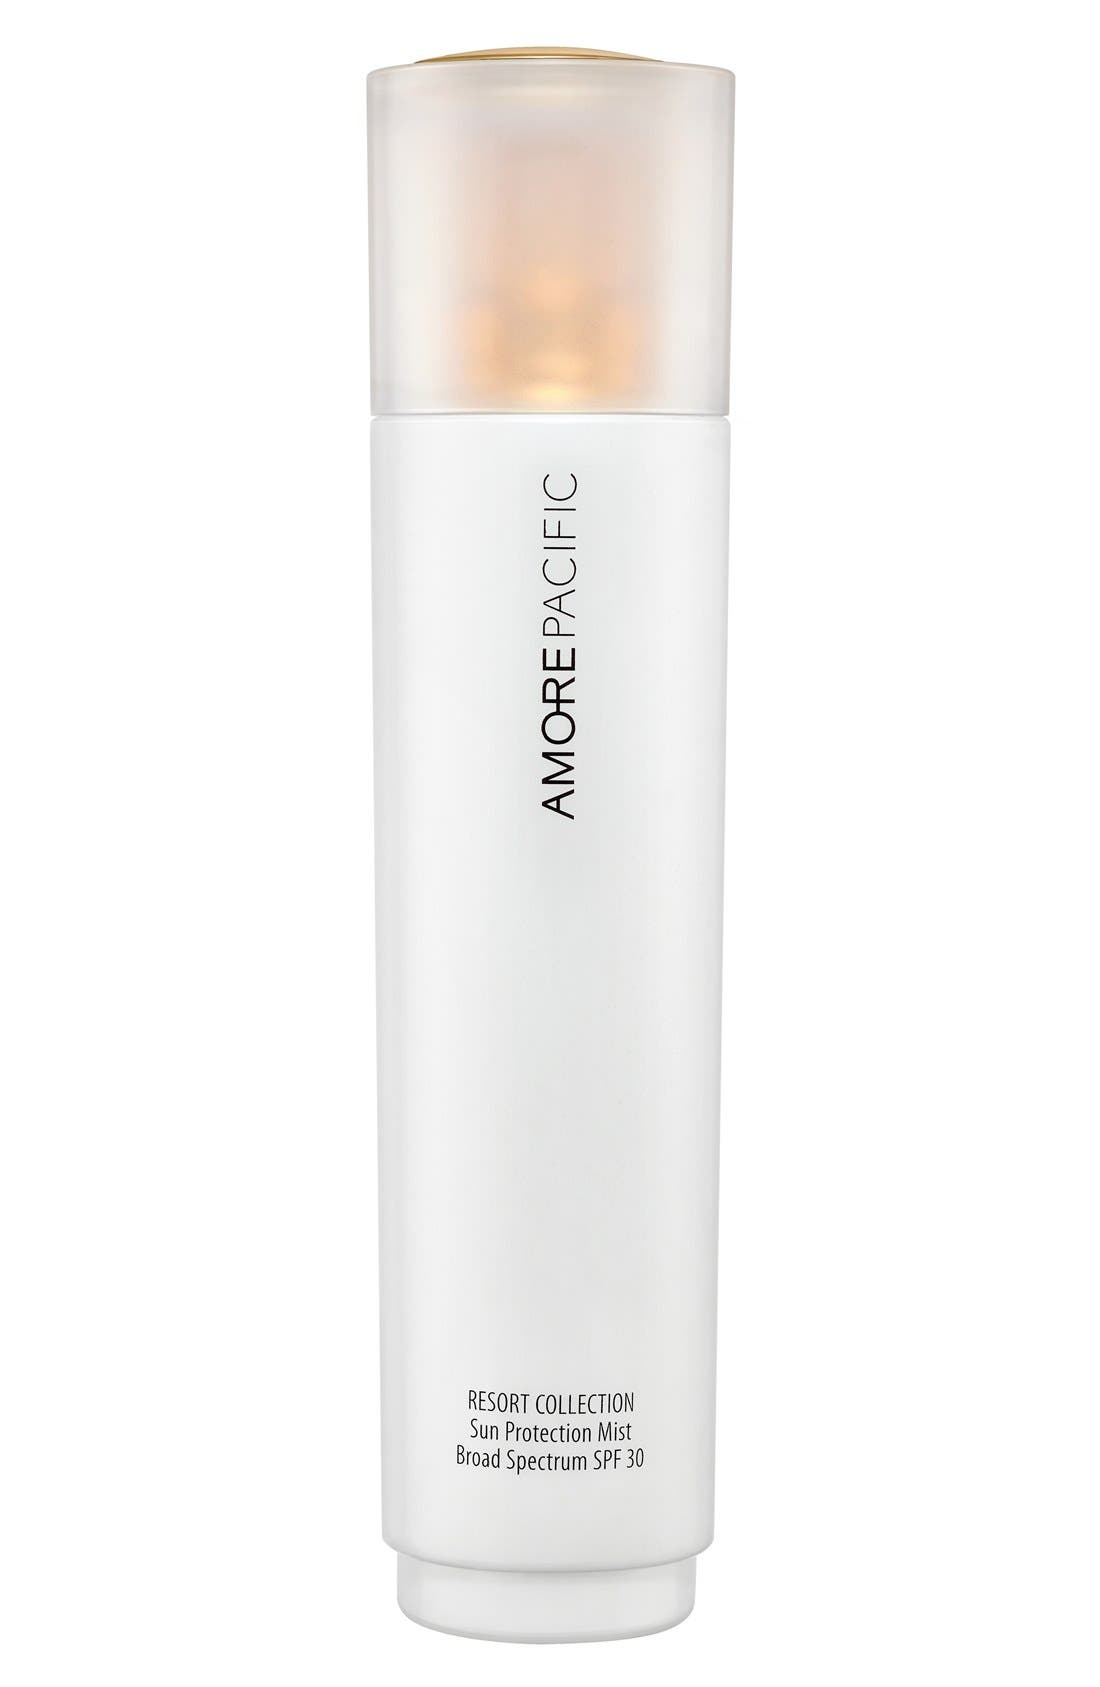 AMOREPACIFIC 'Resort' Sun Protection Mist Broad Spectrum SPF 30